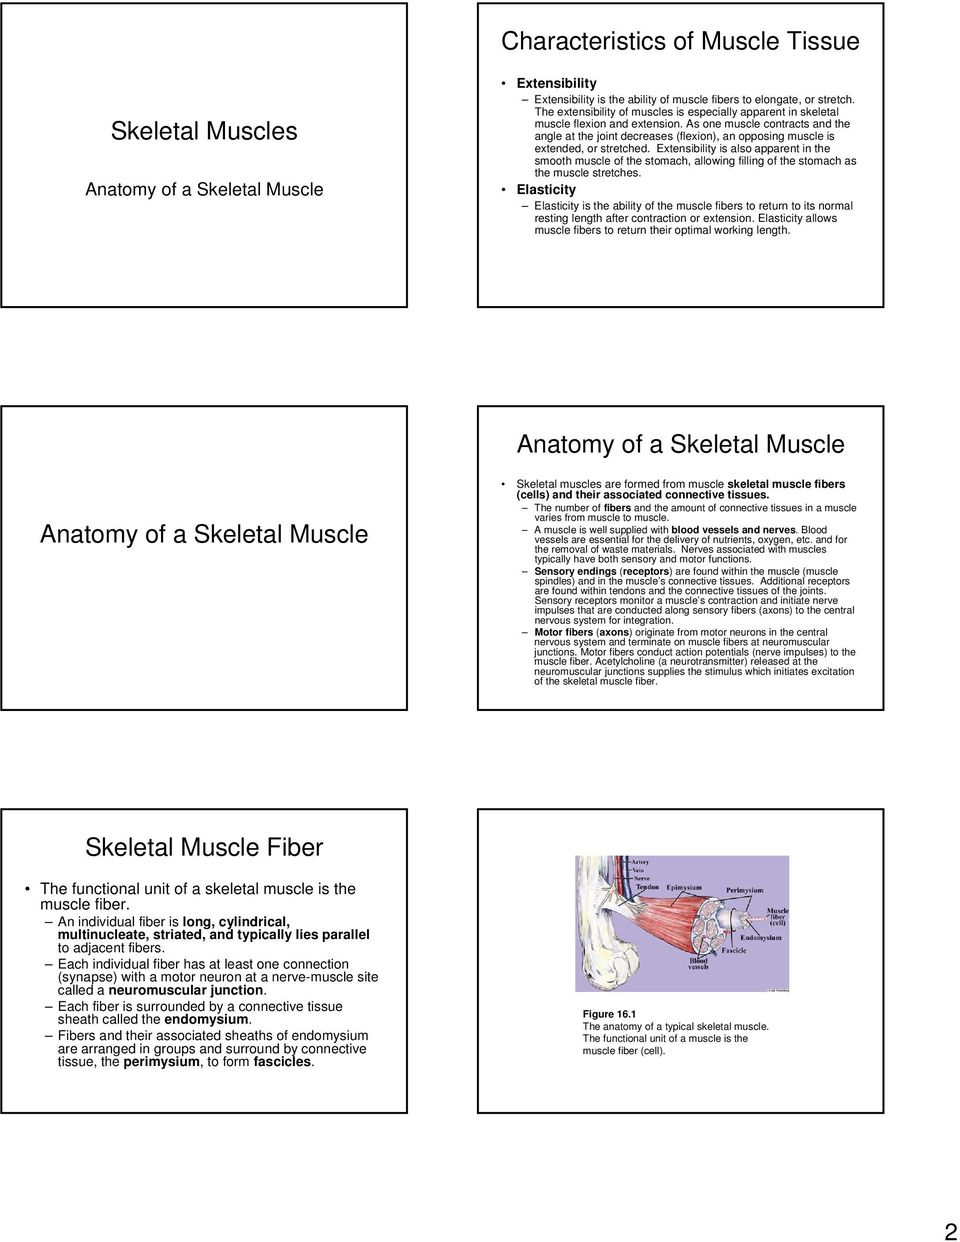 Muscles and Contraction - PDF